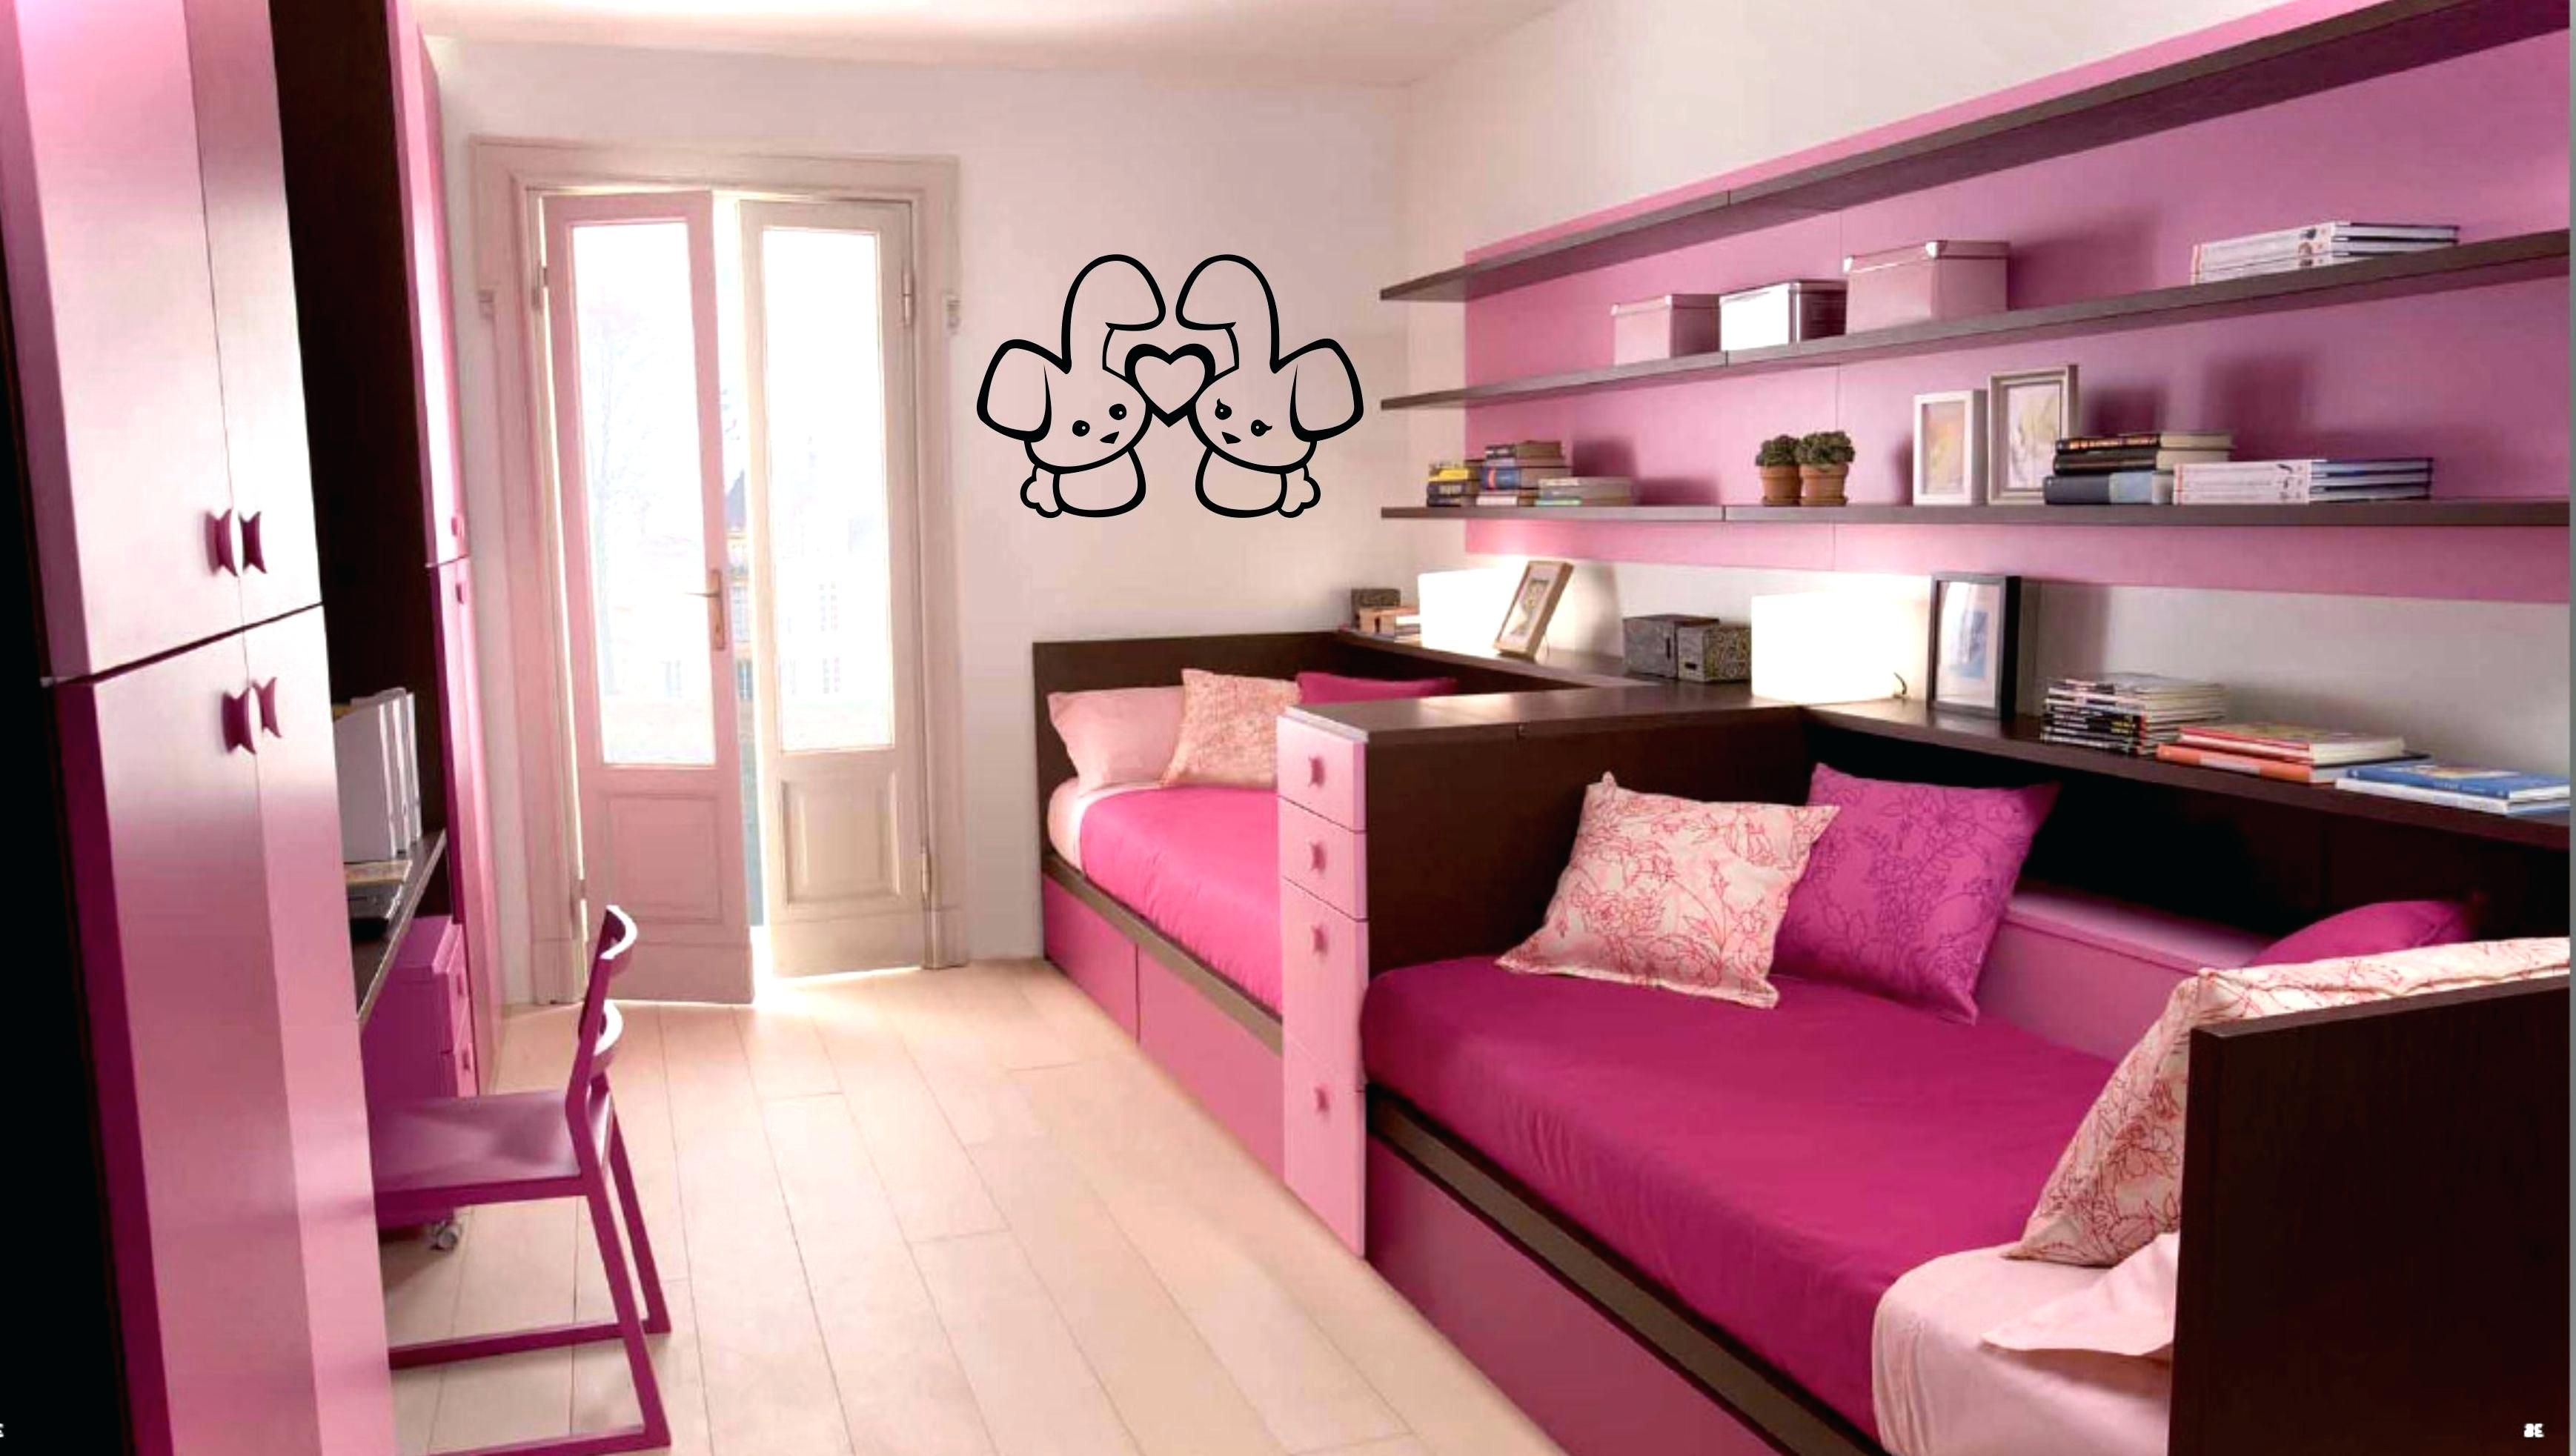 Twin Girl Room Ideas For 2 Lovely Bedroom Design Exciting Girls Bedrooms Two Daybed Boy Themes Girl Bedroom Decor Tween Girl Bedroom Bedroom Design